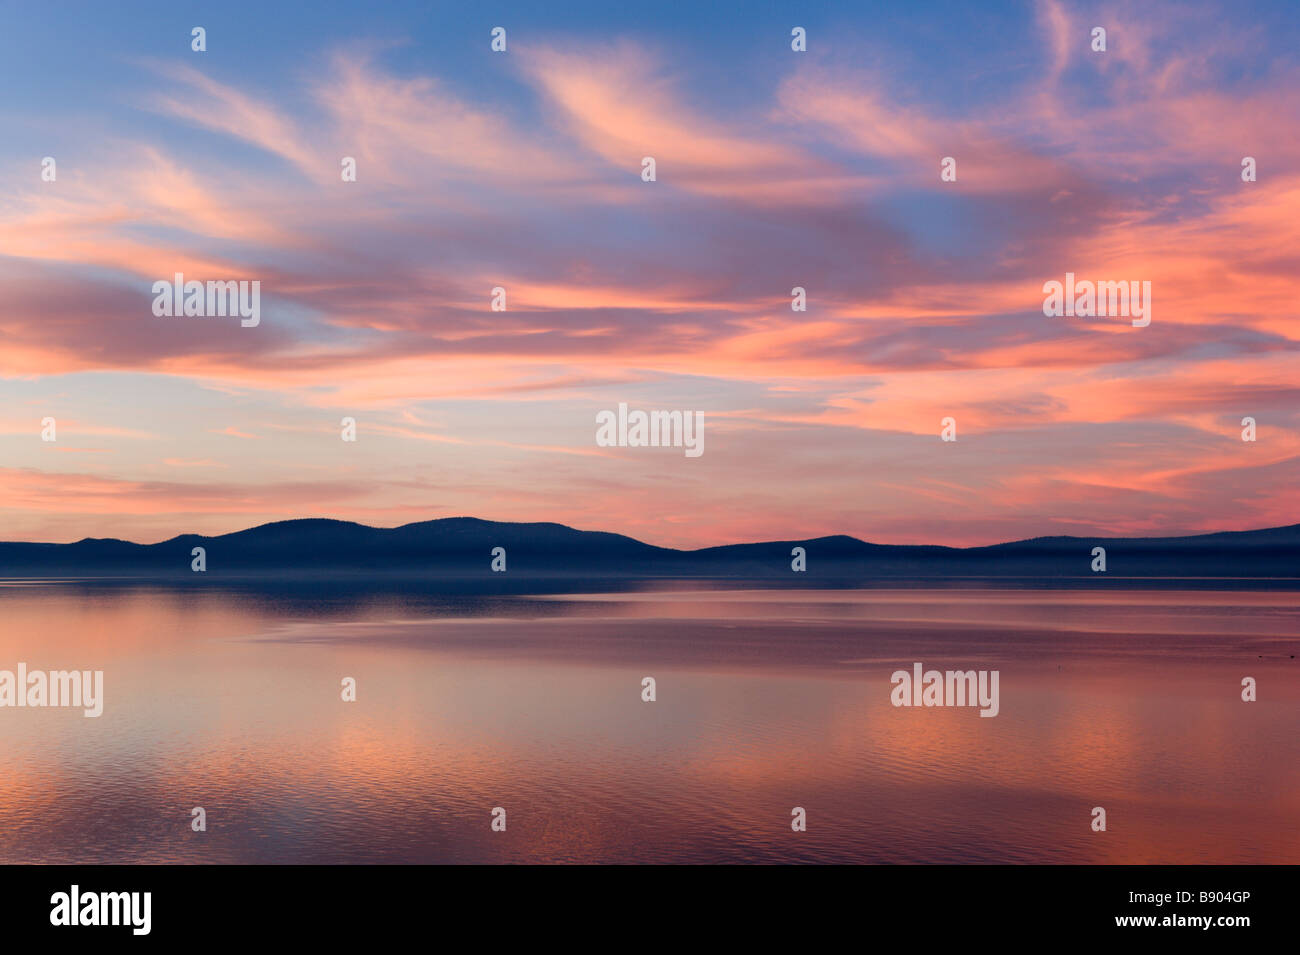 Sunset from Logan Shoals Vista Point off Highway 50, Zephyr Cove, Lake Tahoe, Nevada, USA - Stock Image